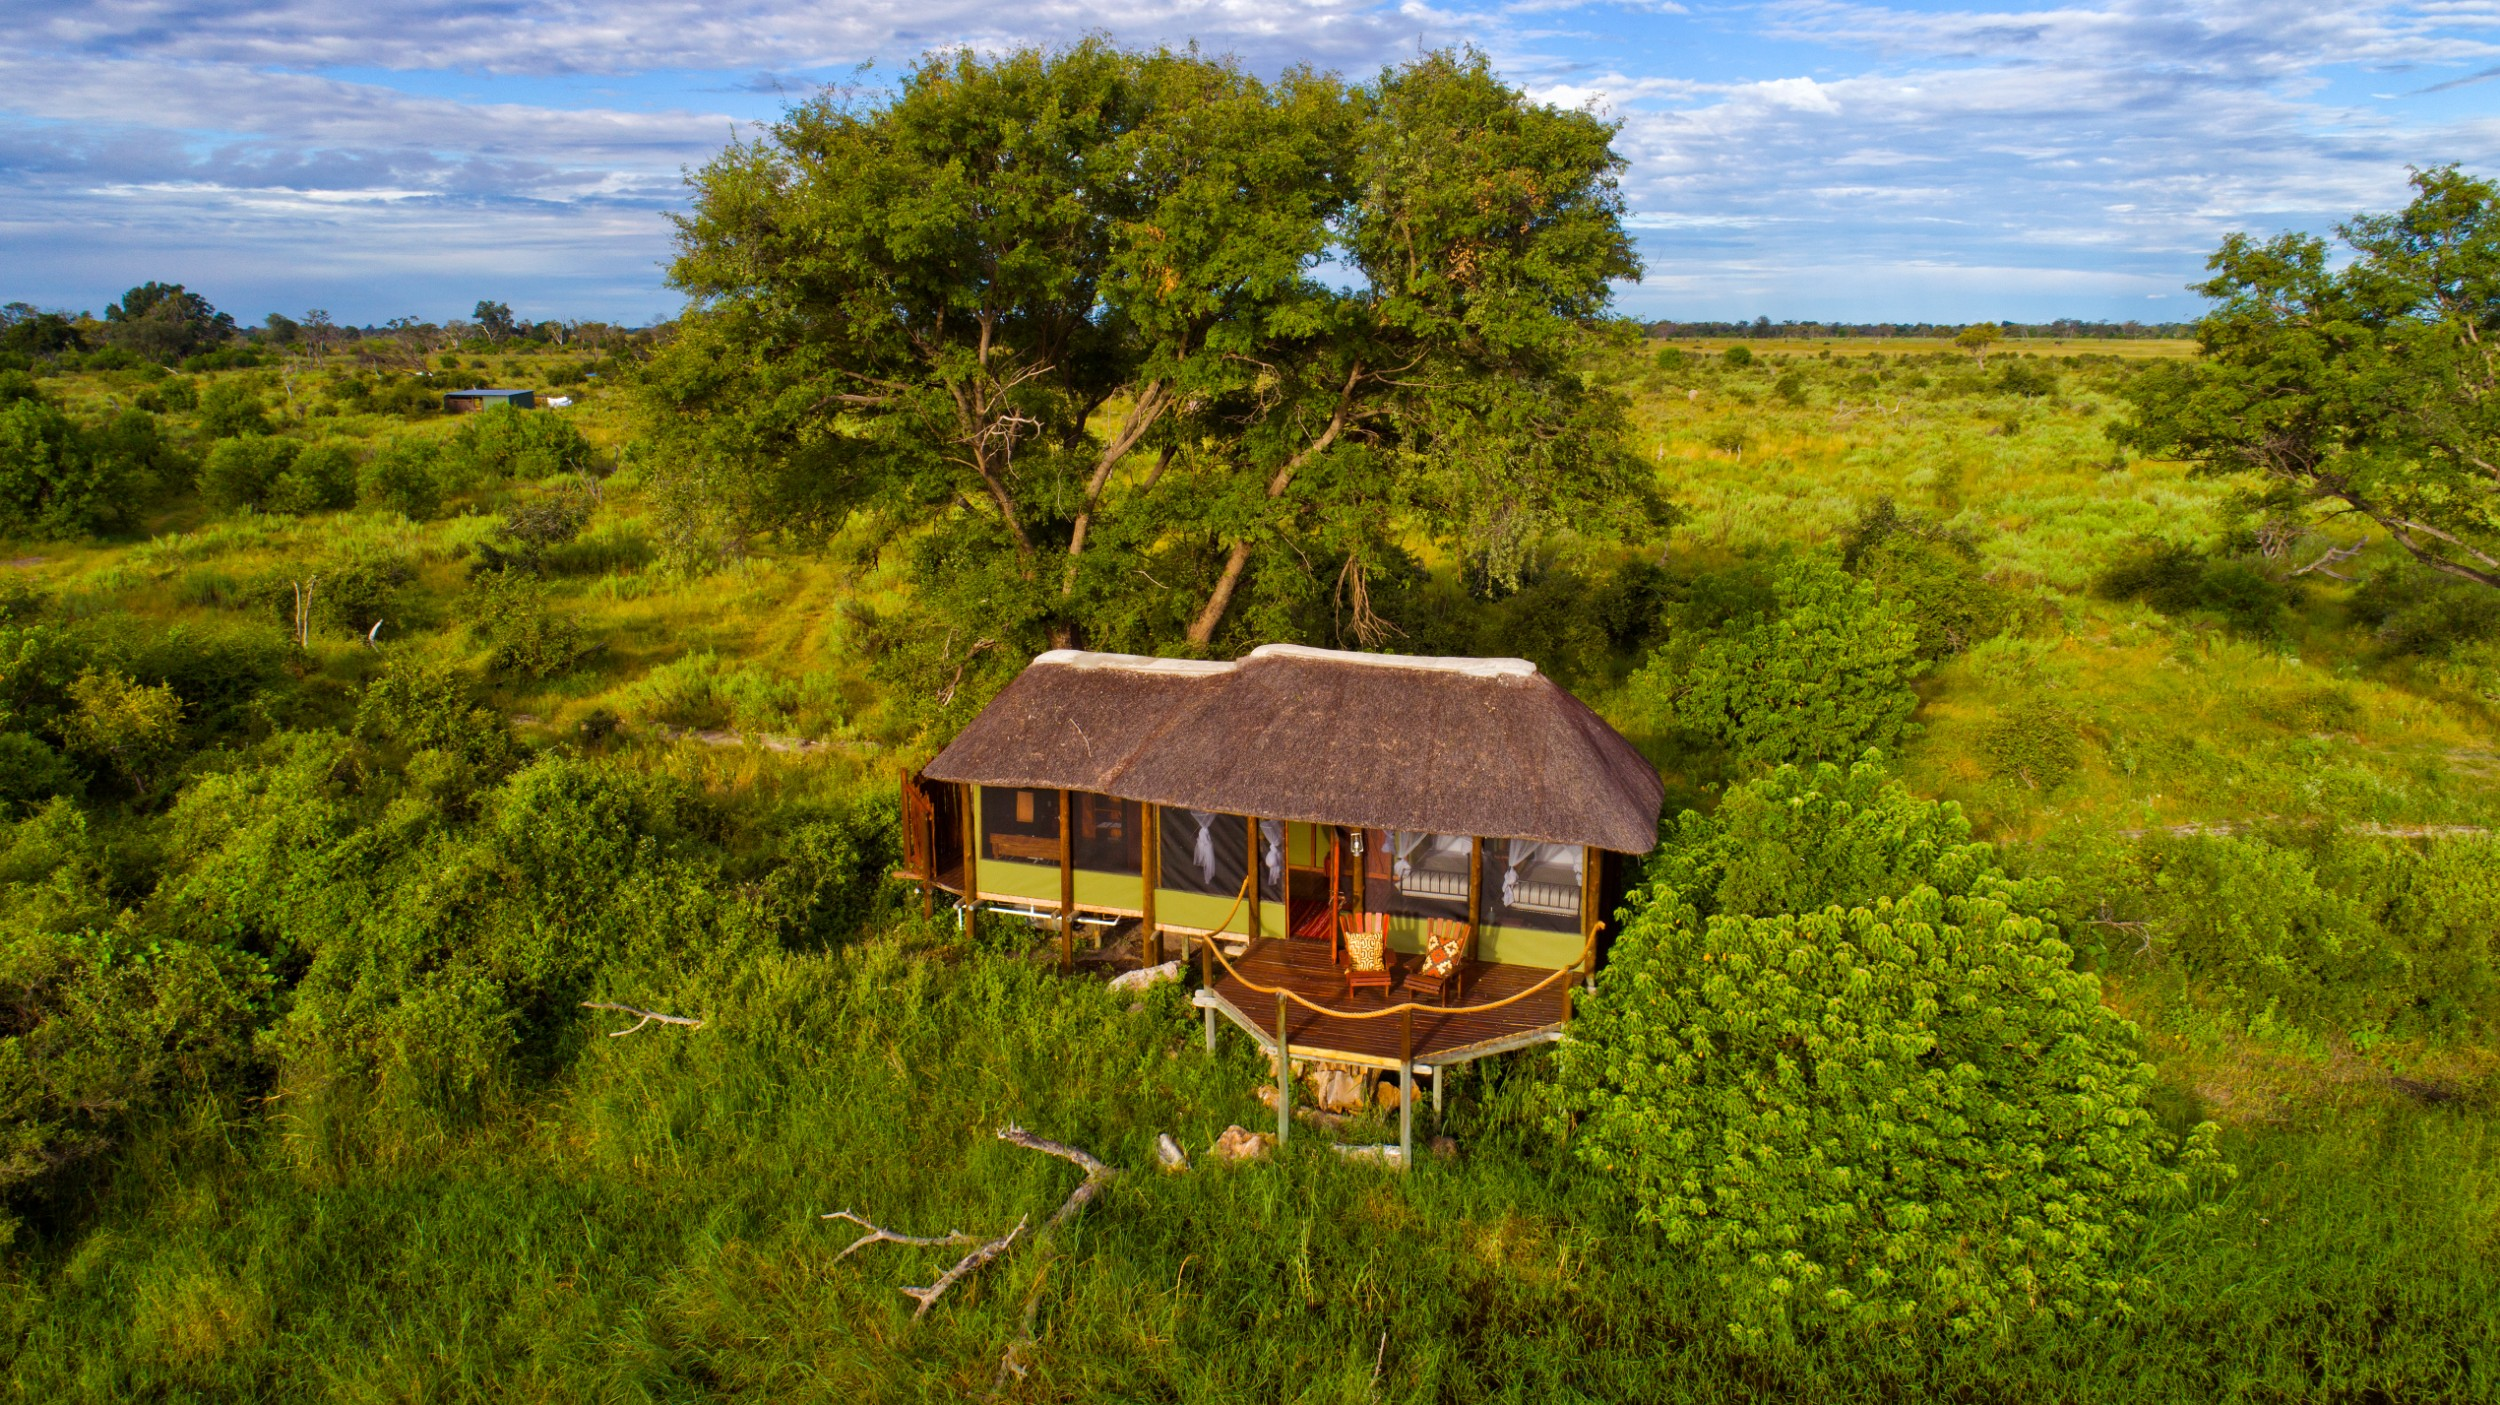 2Mapula Lodge - Chalet from the air.jpg